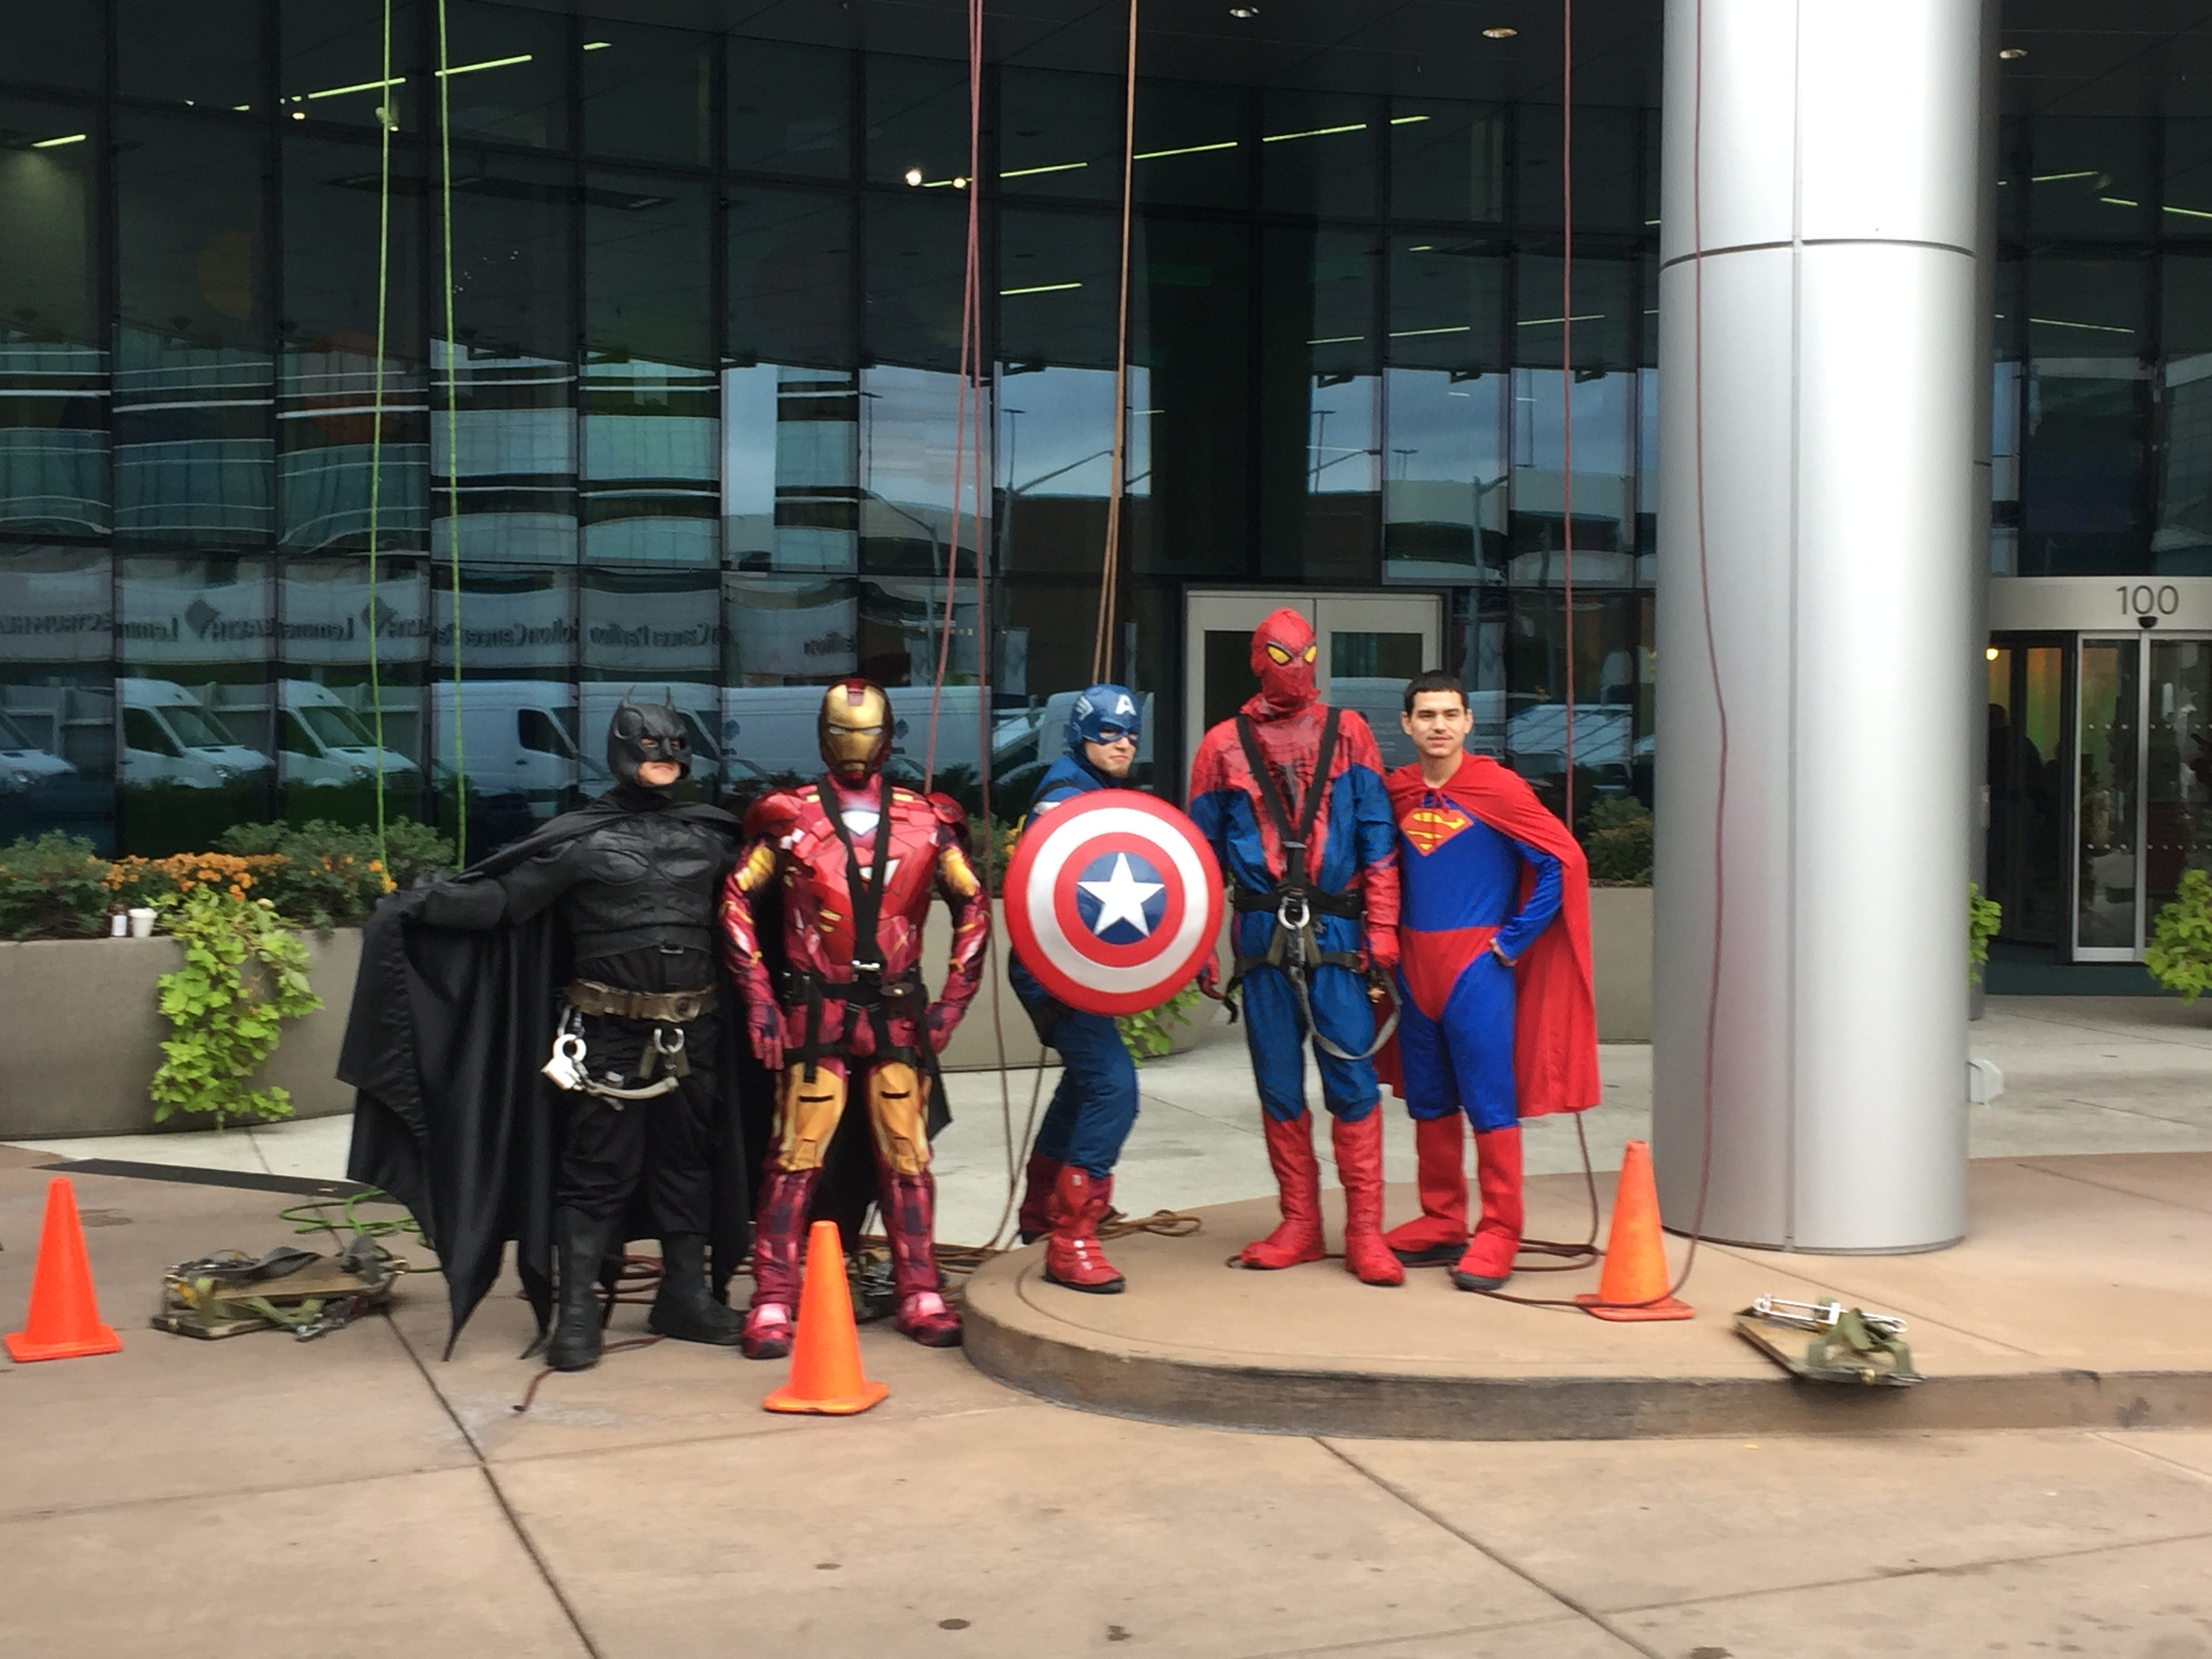 High rise window cleaners dressed up as superheroes to suprise children on Halloween at the hospital